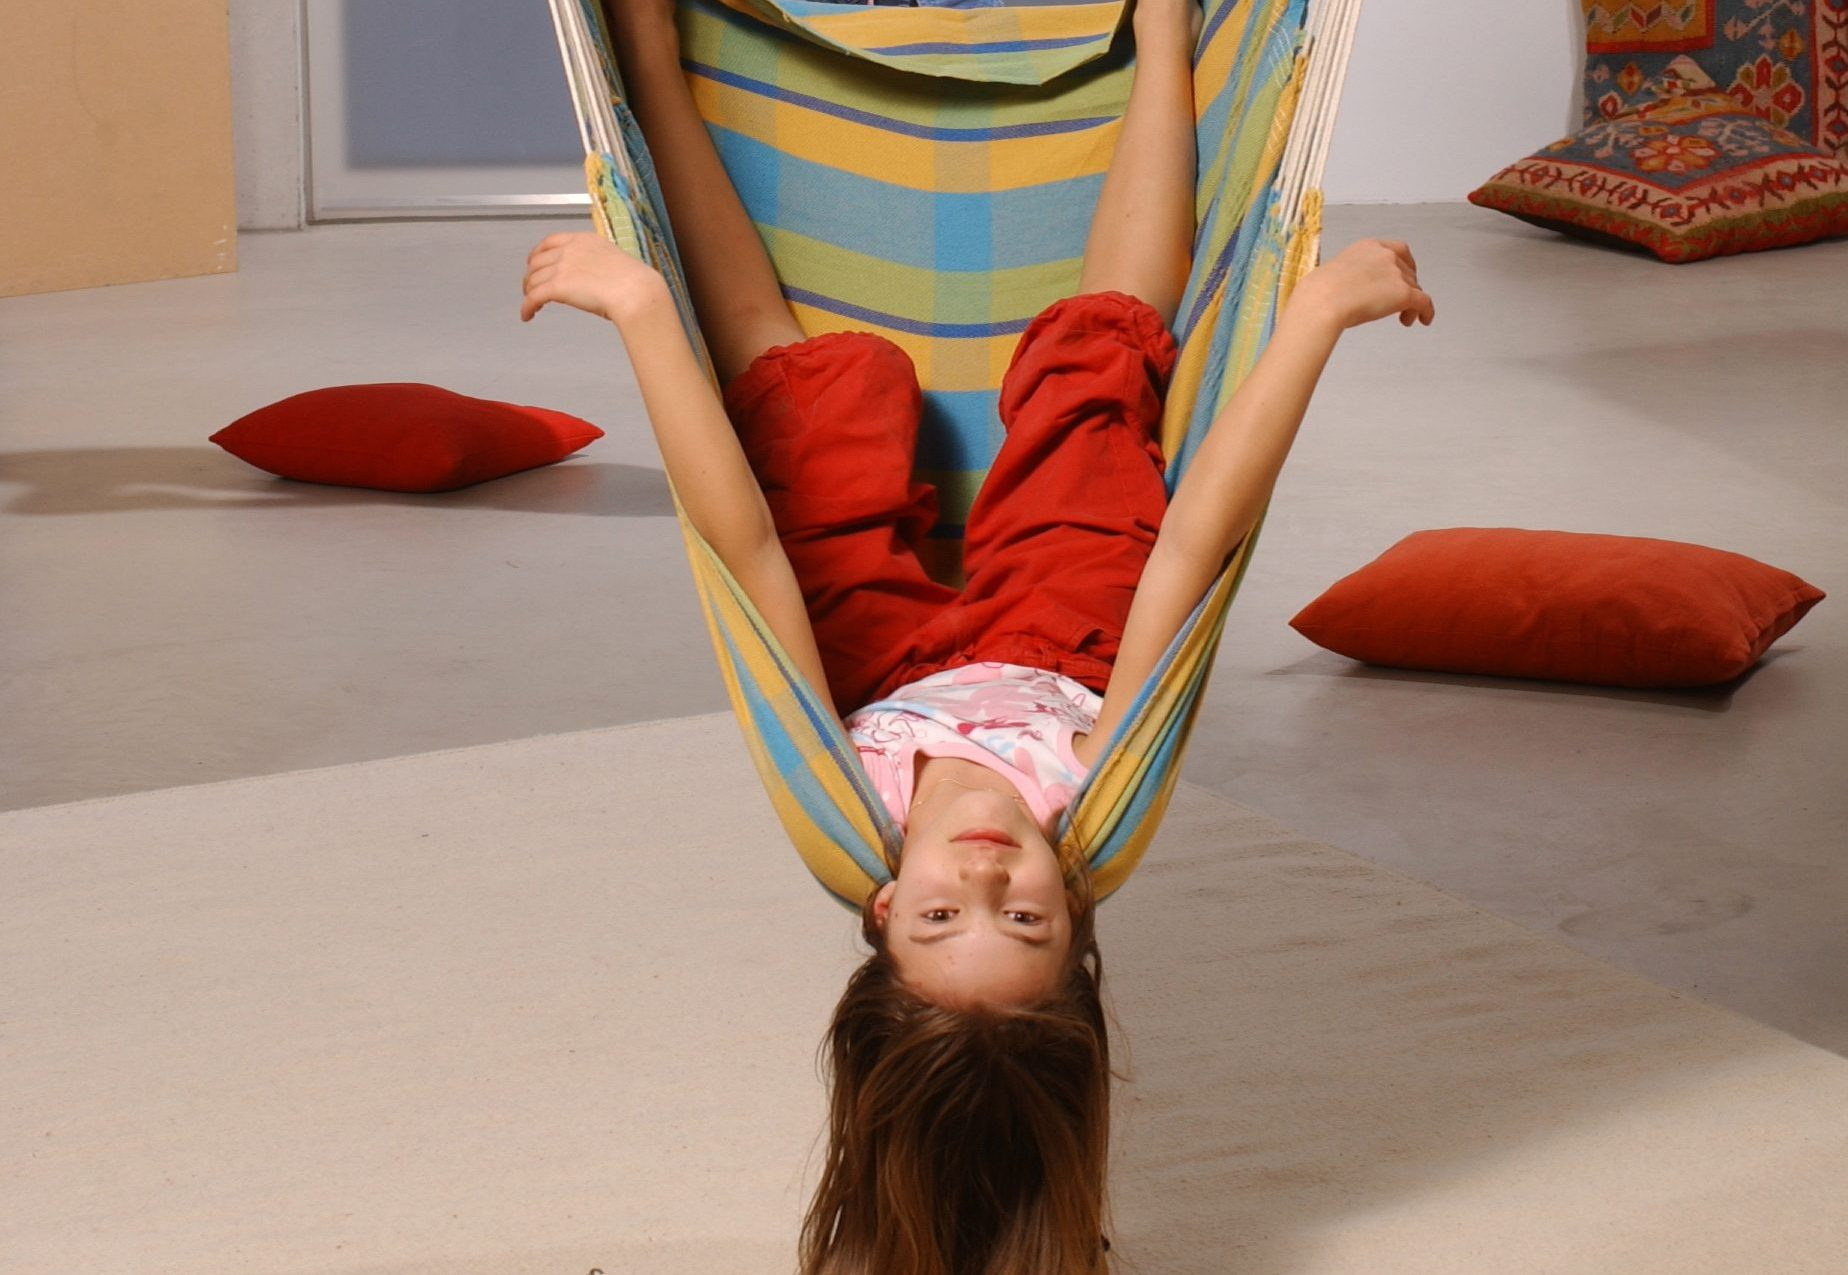 Kids Hanging Chair 7 Reasons To Hang A Hanging Chair In Kid 39s Room